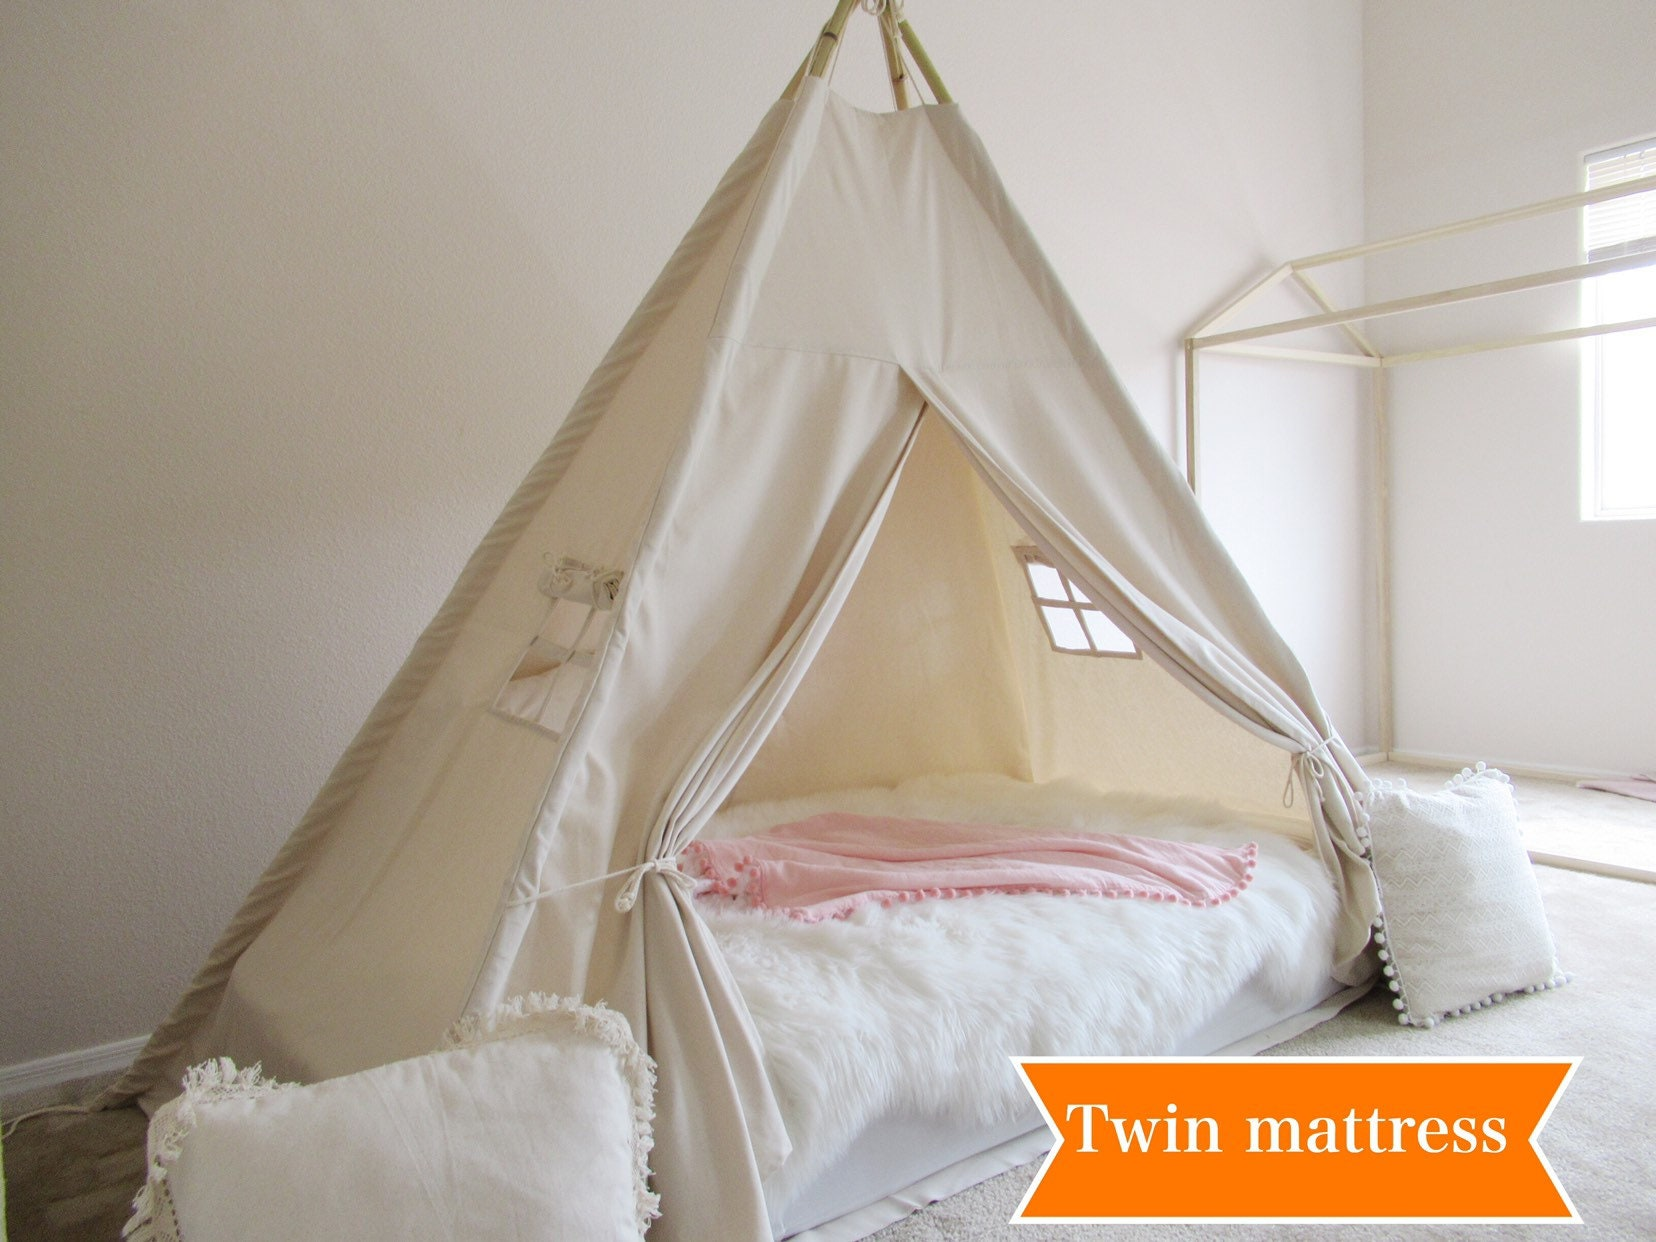 - Plain Bed Teepee With Higher Standing Room, Tent Bed Canopy, Kids